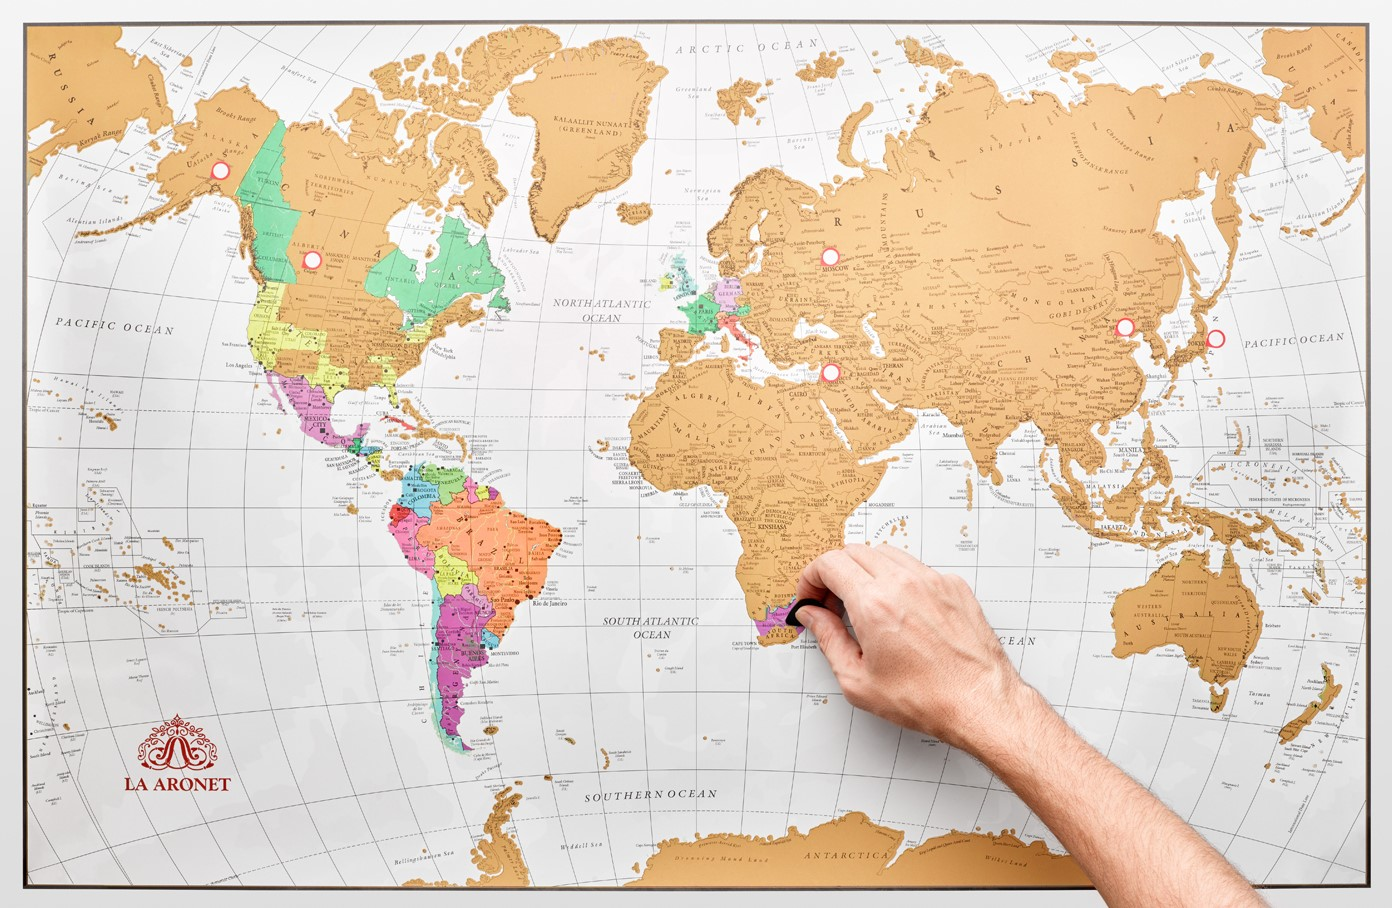 GOTTA SCRATCH 'EM ALL! - Turn your travel into vibrant art. Vacations make for great memories. But now they also make for great art! Our elegant LA ARONET Scratch Off World Map comes with elegant gold foil on vibrant, detailed countries bordered by crisp, white oceans. It makes for the perfect memory and the perfect accent on any wall!